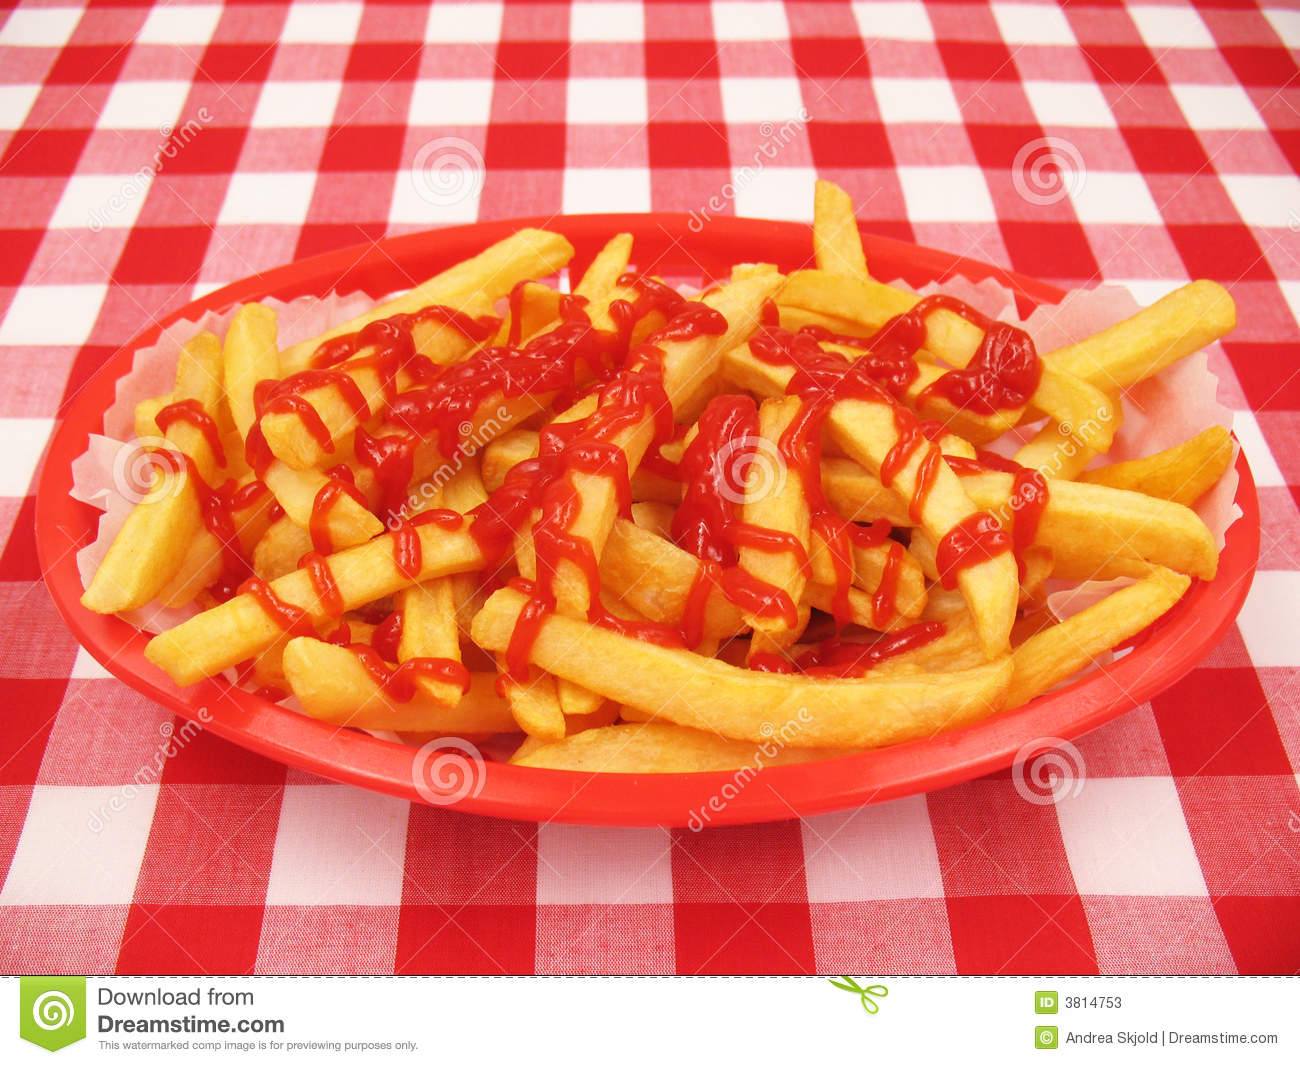 pommes frites avec le ketchup dans un panier rouge image stock image du restaurant frit 3814753. Black Bedroom Furniture Sets. Home Design Ideas